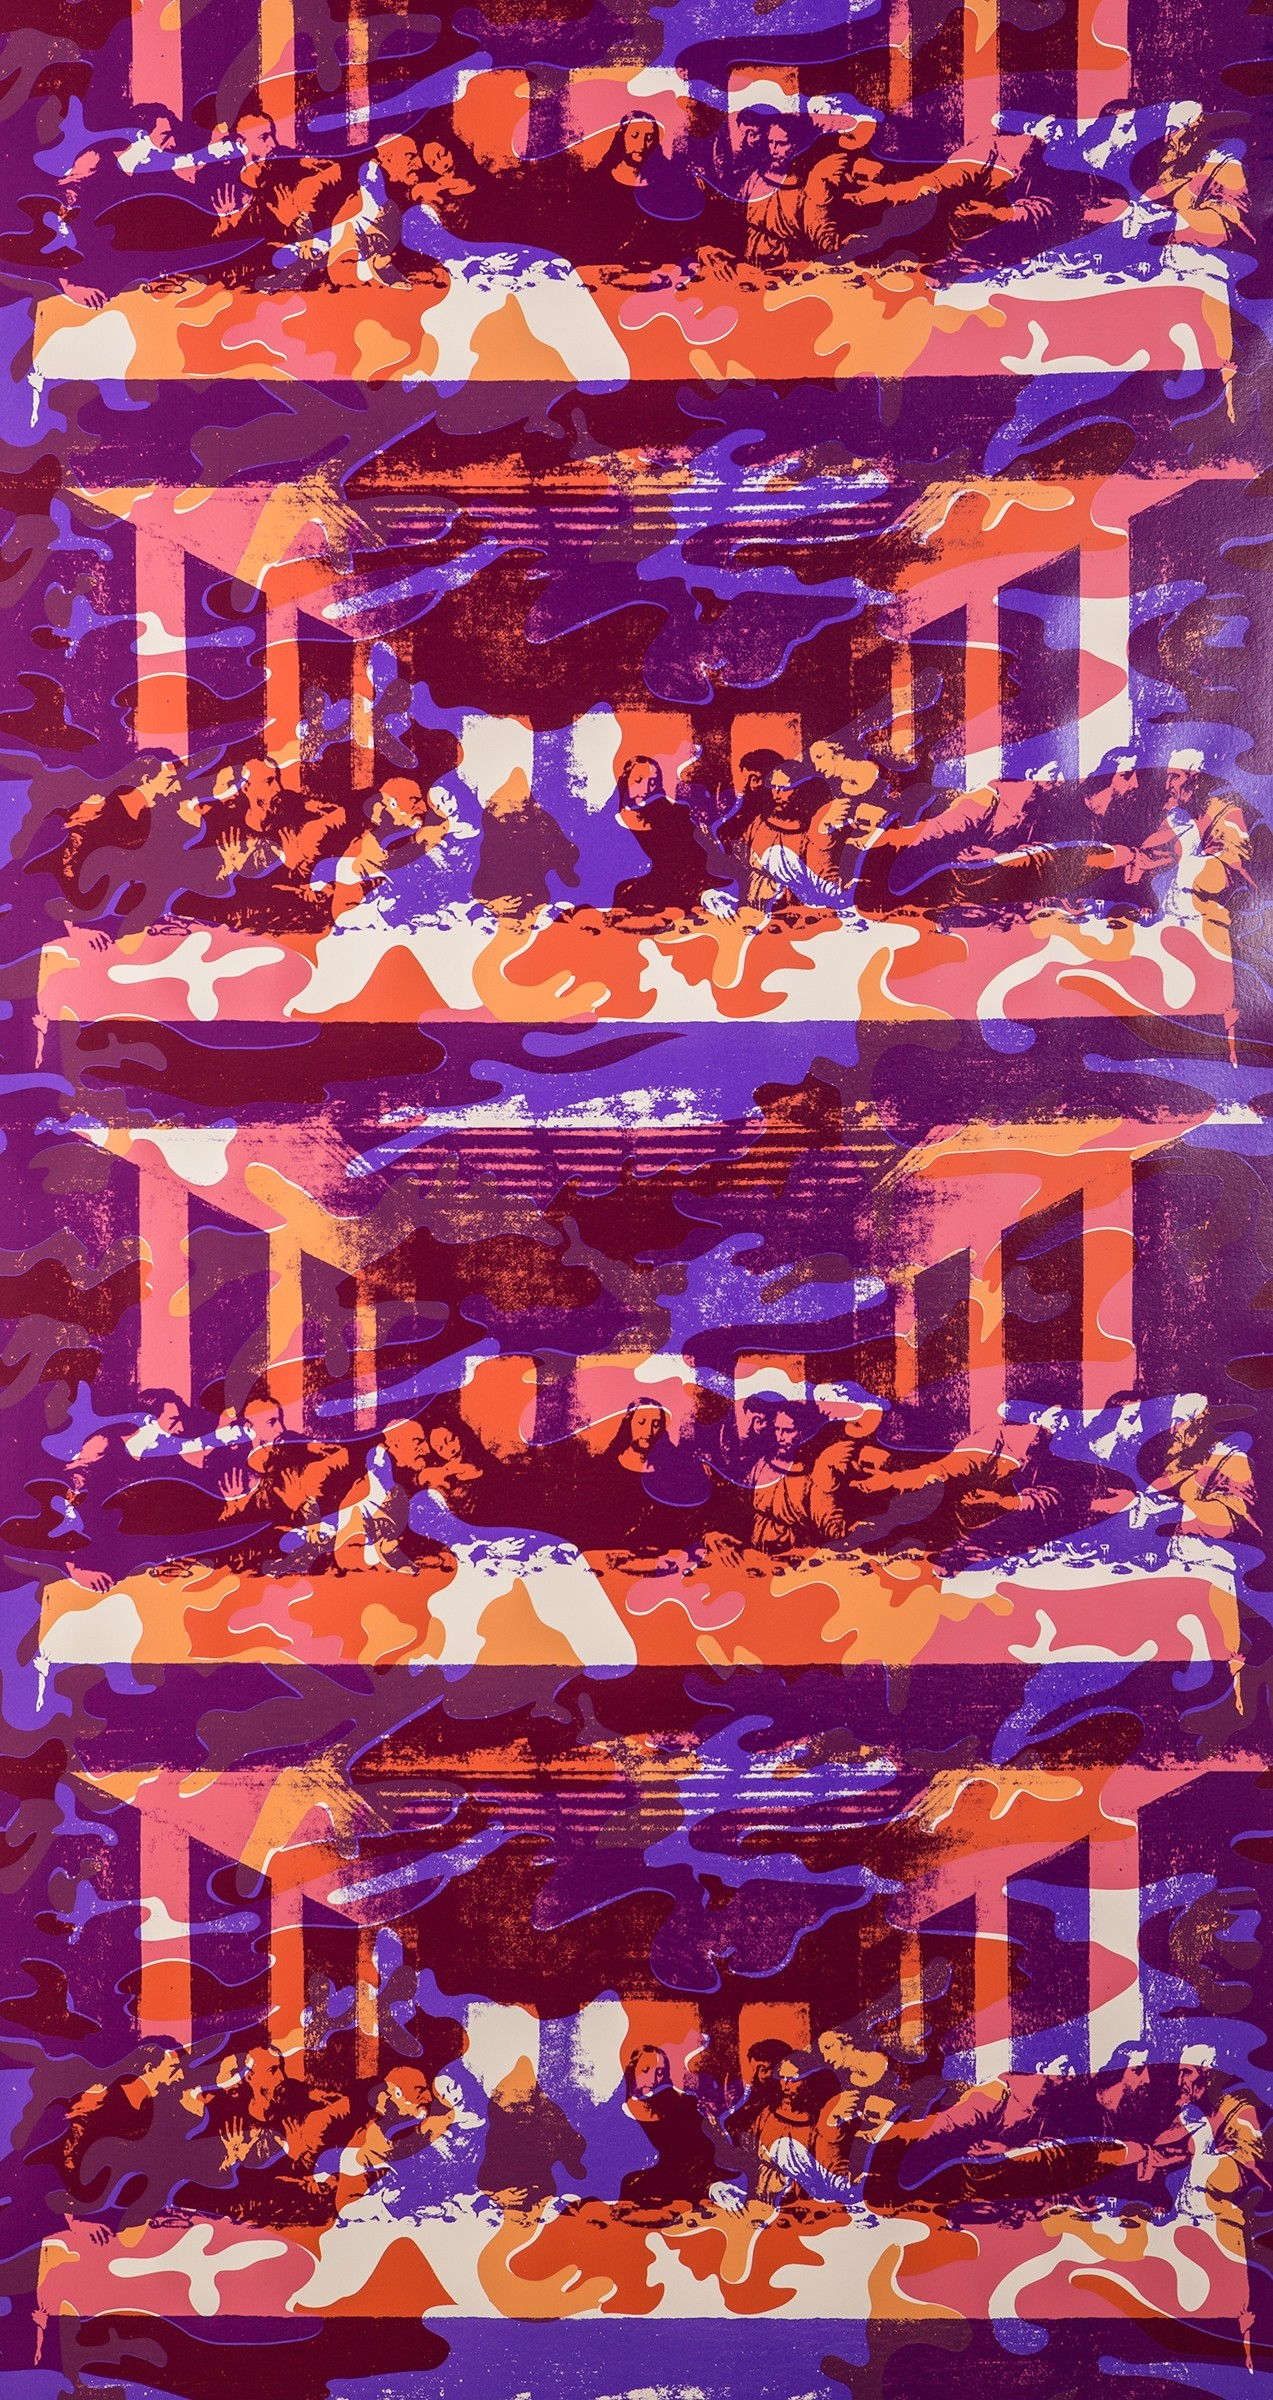 The Last Supper. Lenten Apricot on Blush Clay Coated Paper